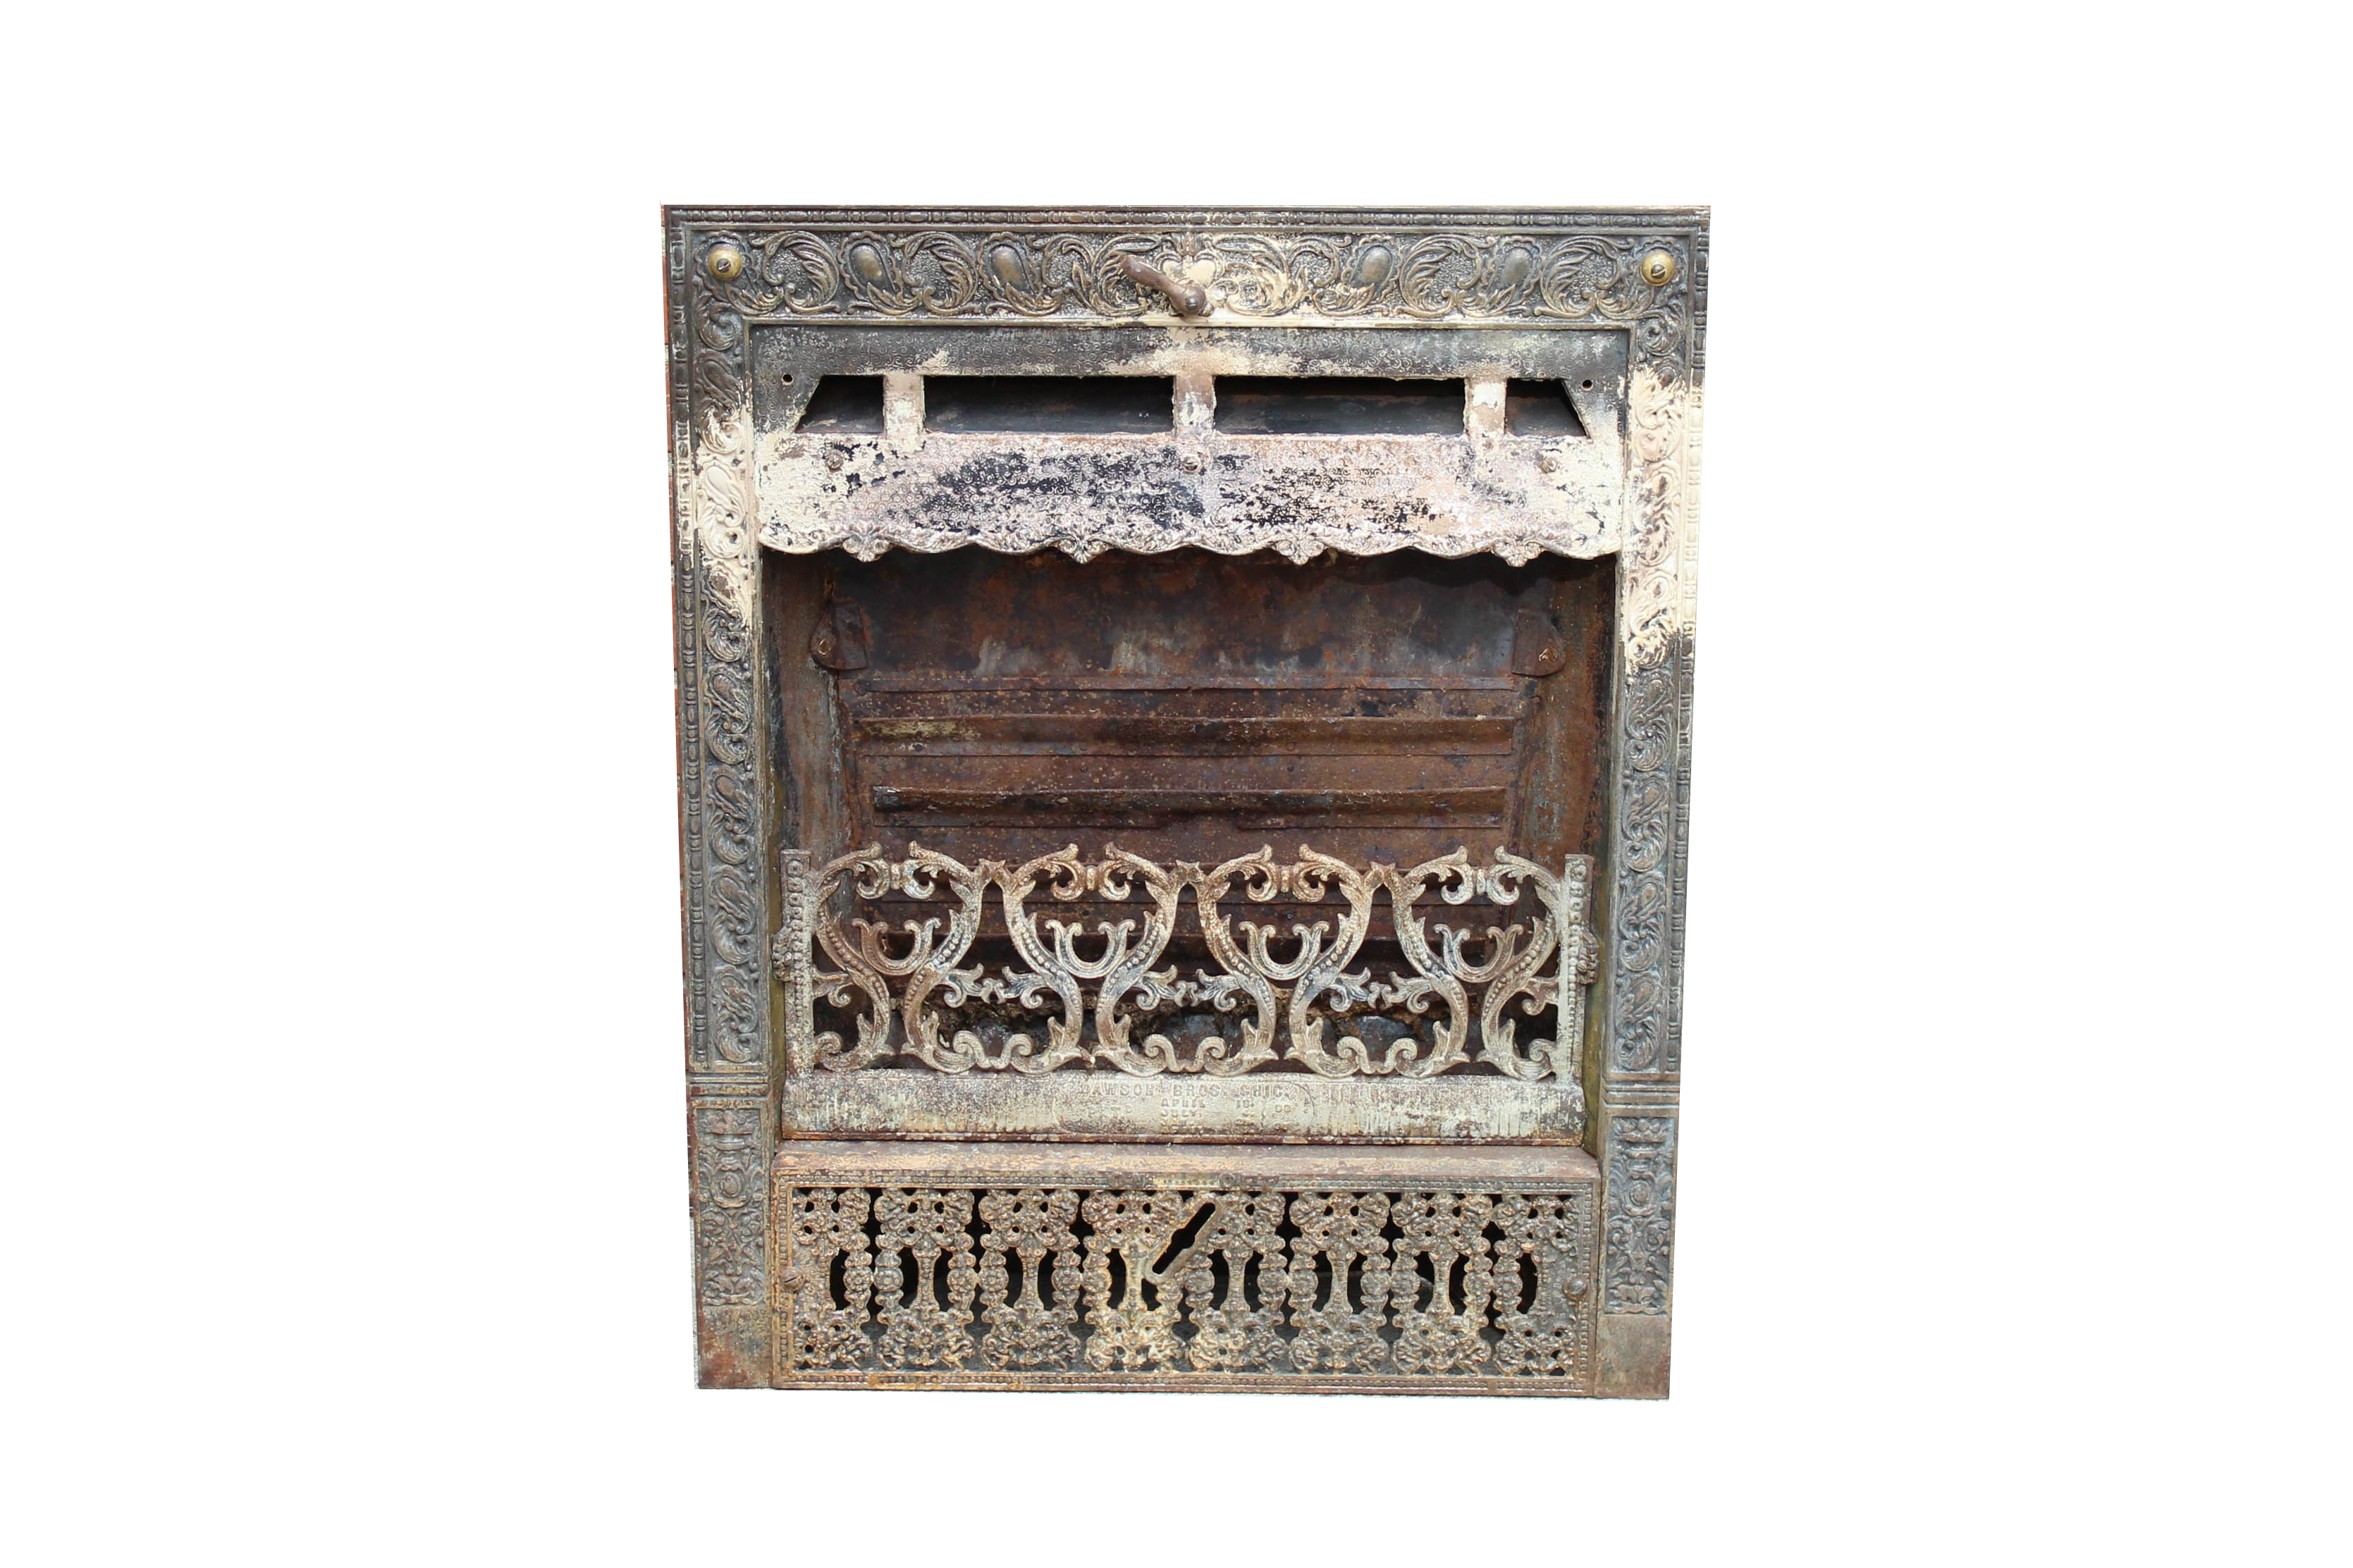 Dawson Brothers Antique Cast Iron Fireplace Insert from EBTH.com